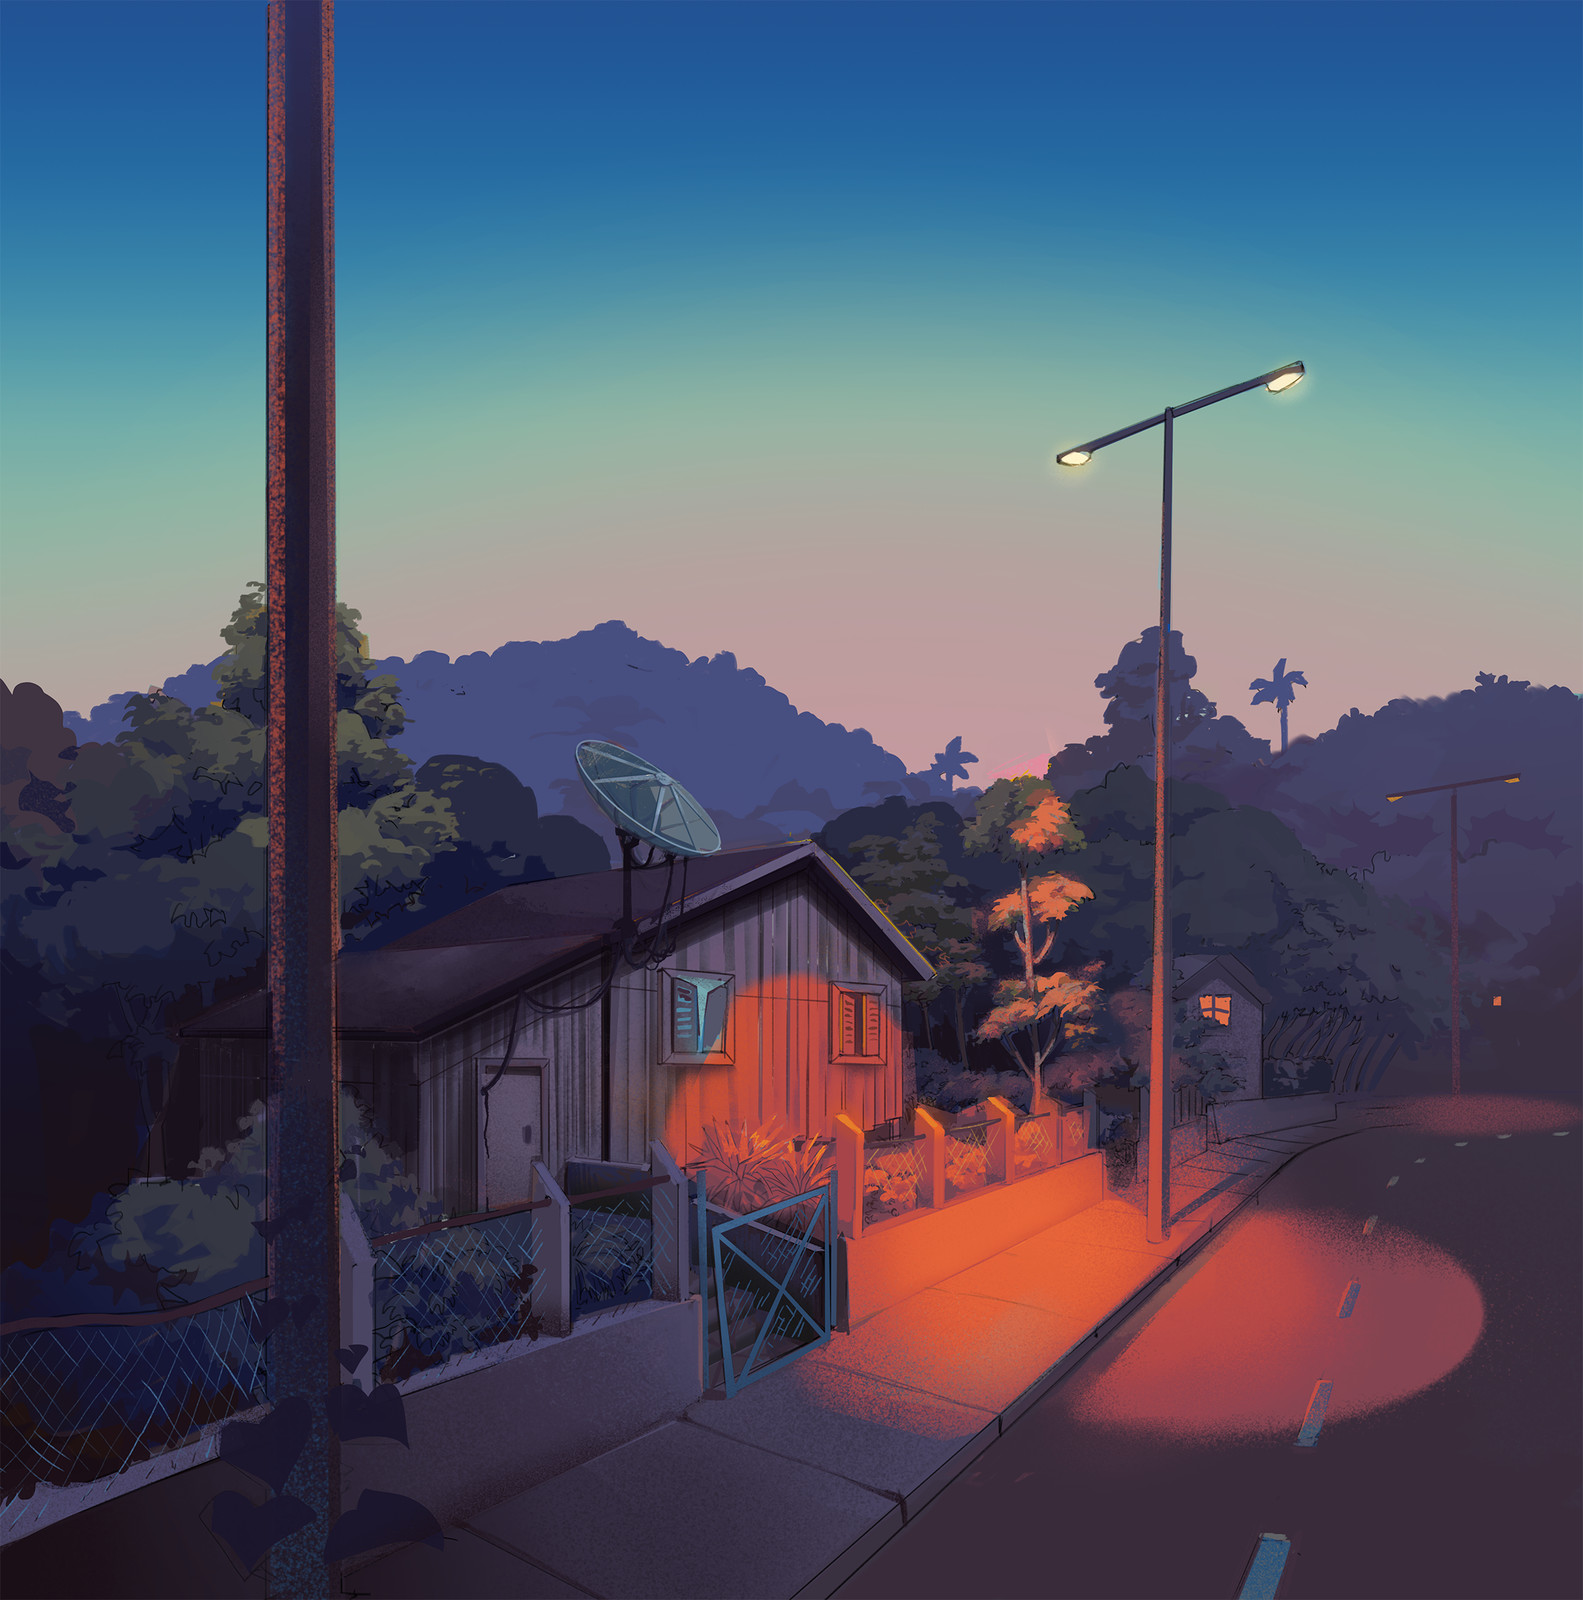 background for first panel of our comic